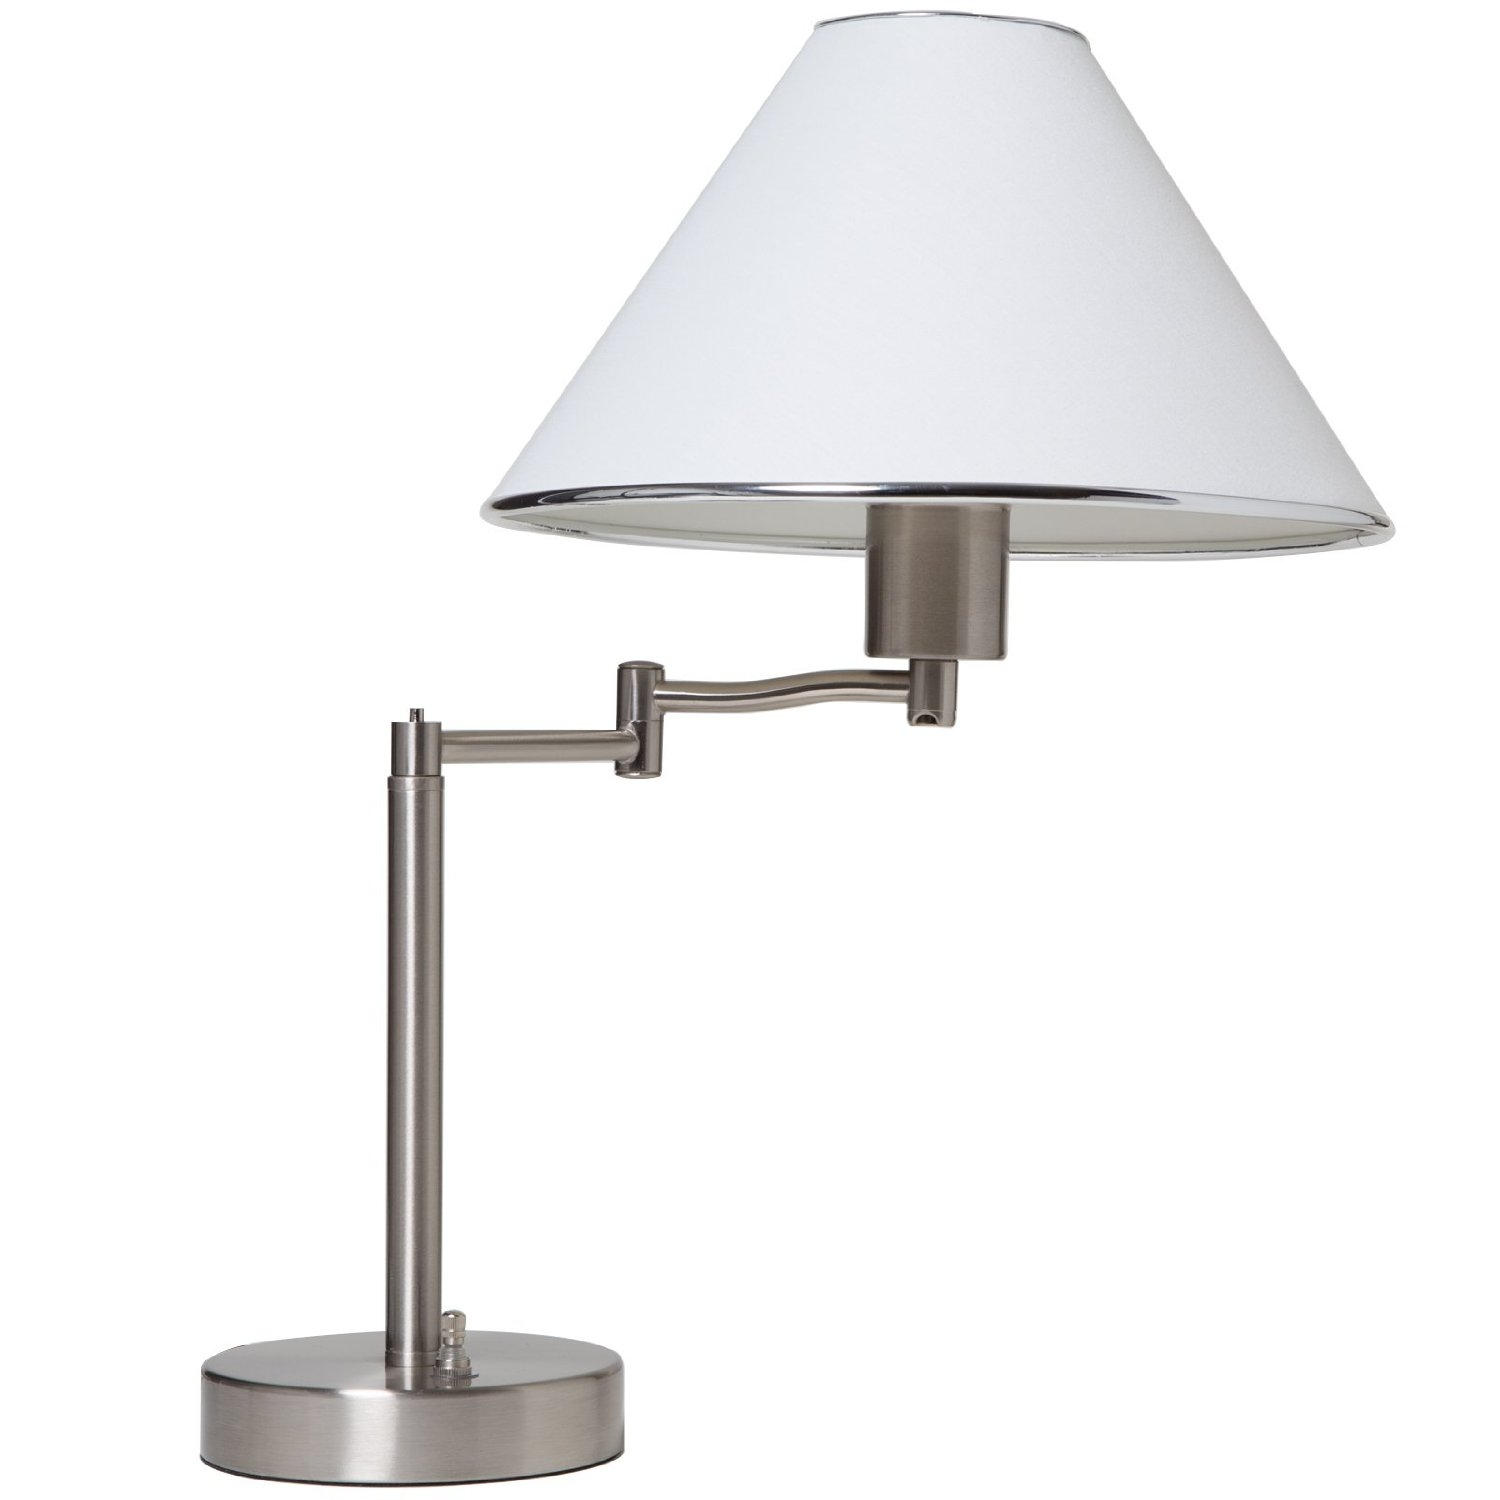 """This Sing Arm Table Lamp in Brushed Nickel and White Fabric Shade is a great way to provide light at your desk. Lamp is finished in satin nickel and has a white fabric shade with trim. With the swinging arm, the lamp can provide light wherever you need it and can be adjusted to an overall height of 18-1/2"""". Uses a 60 watt maximum A-19 bulb (sold separately)."""